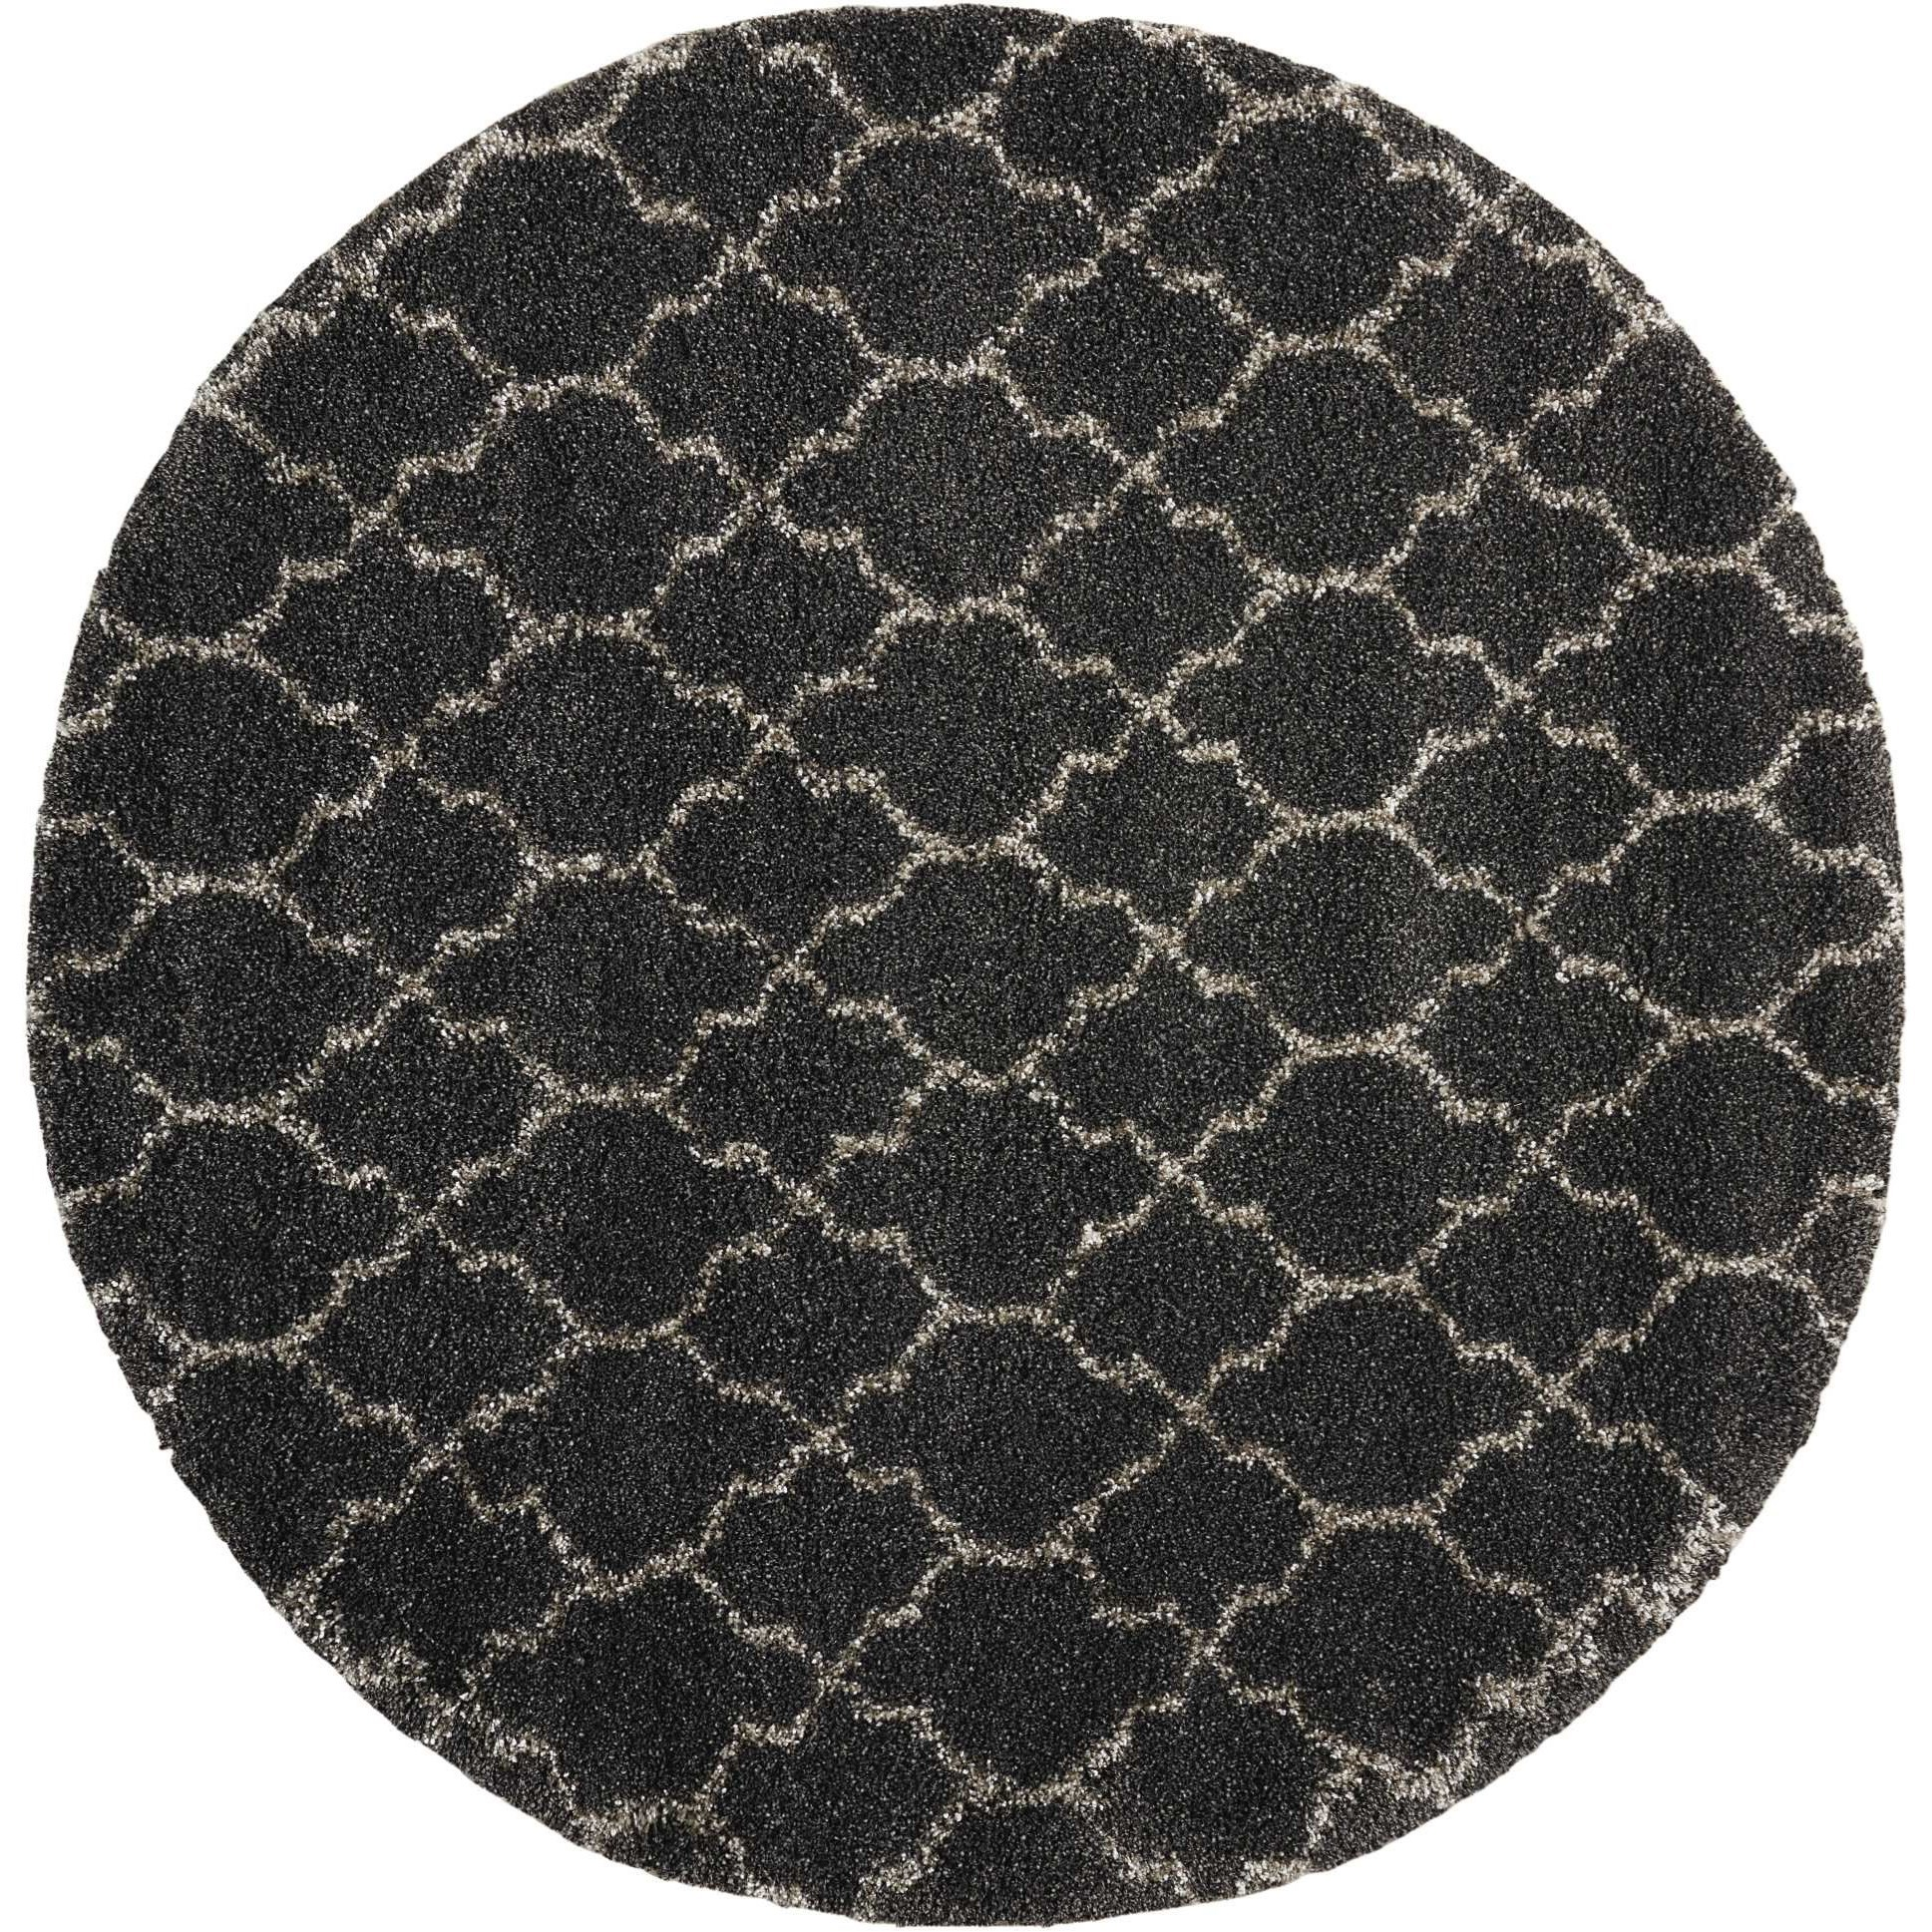 Amore Amore AMOR2 Black 7' Round   Rug by Nourison at Home Collections Furniture